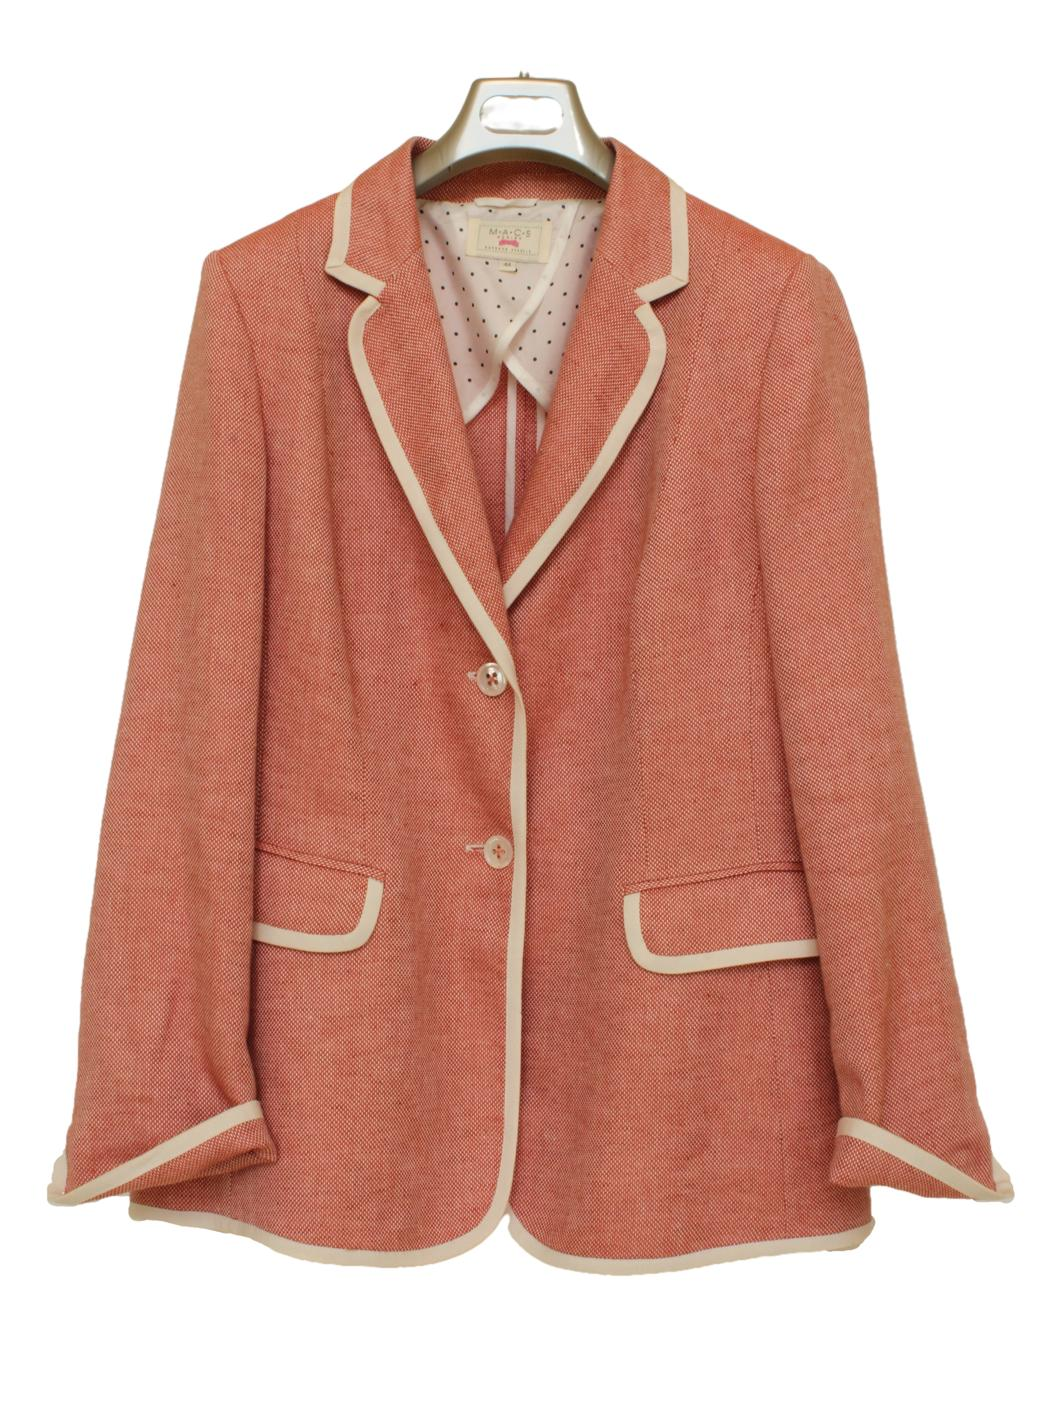 MAISON COMMON Blazer